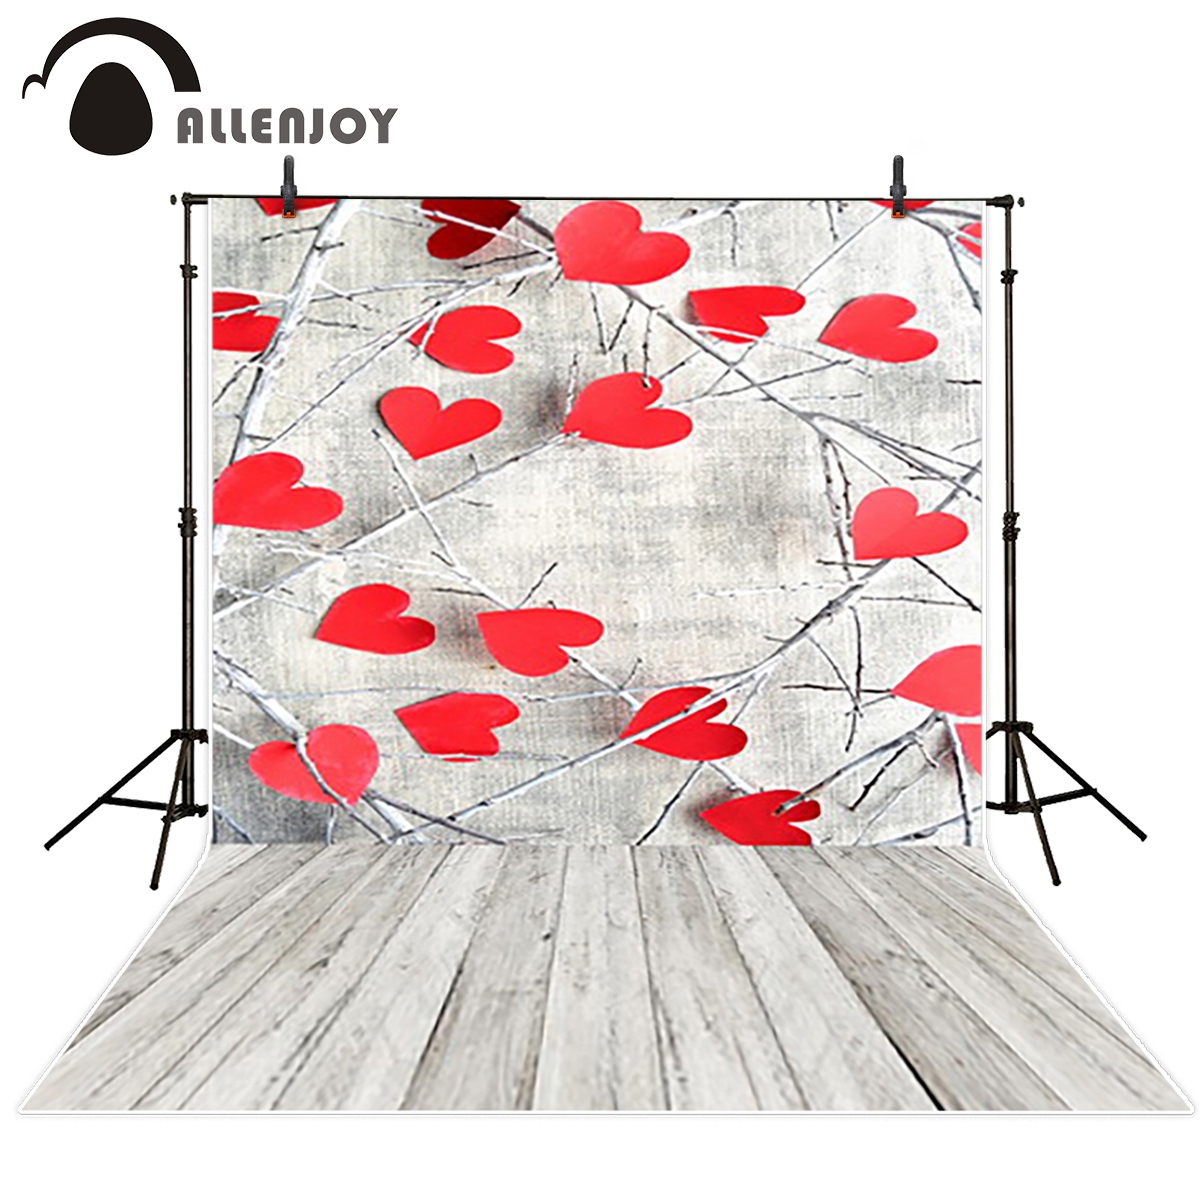 Allenjoy photography backdrops Love white wood board floor red hearts branches Valentine 's Day wedding photo booth profissional 8x10ft valentine s day photography pink love heart shape adult portrait backdrop d 7324